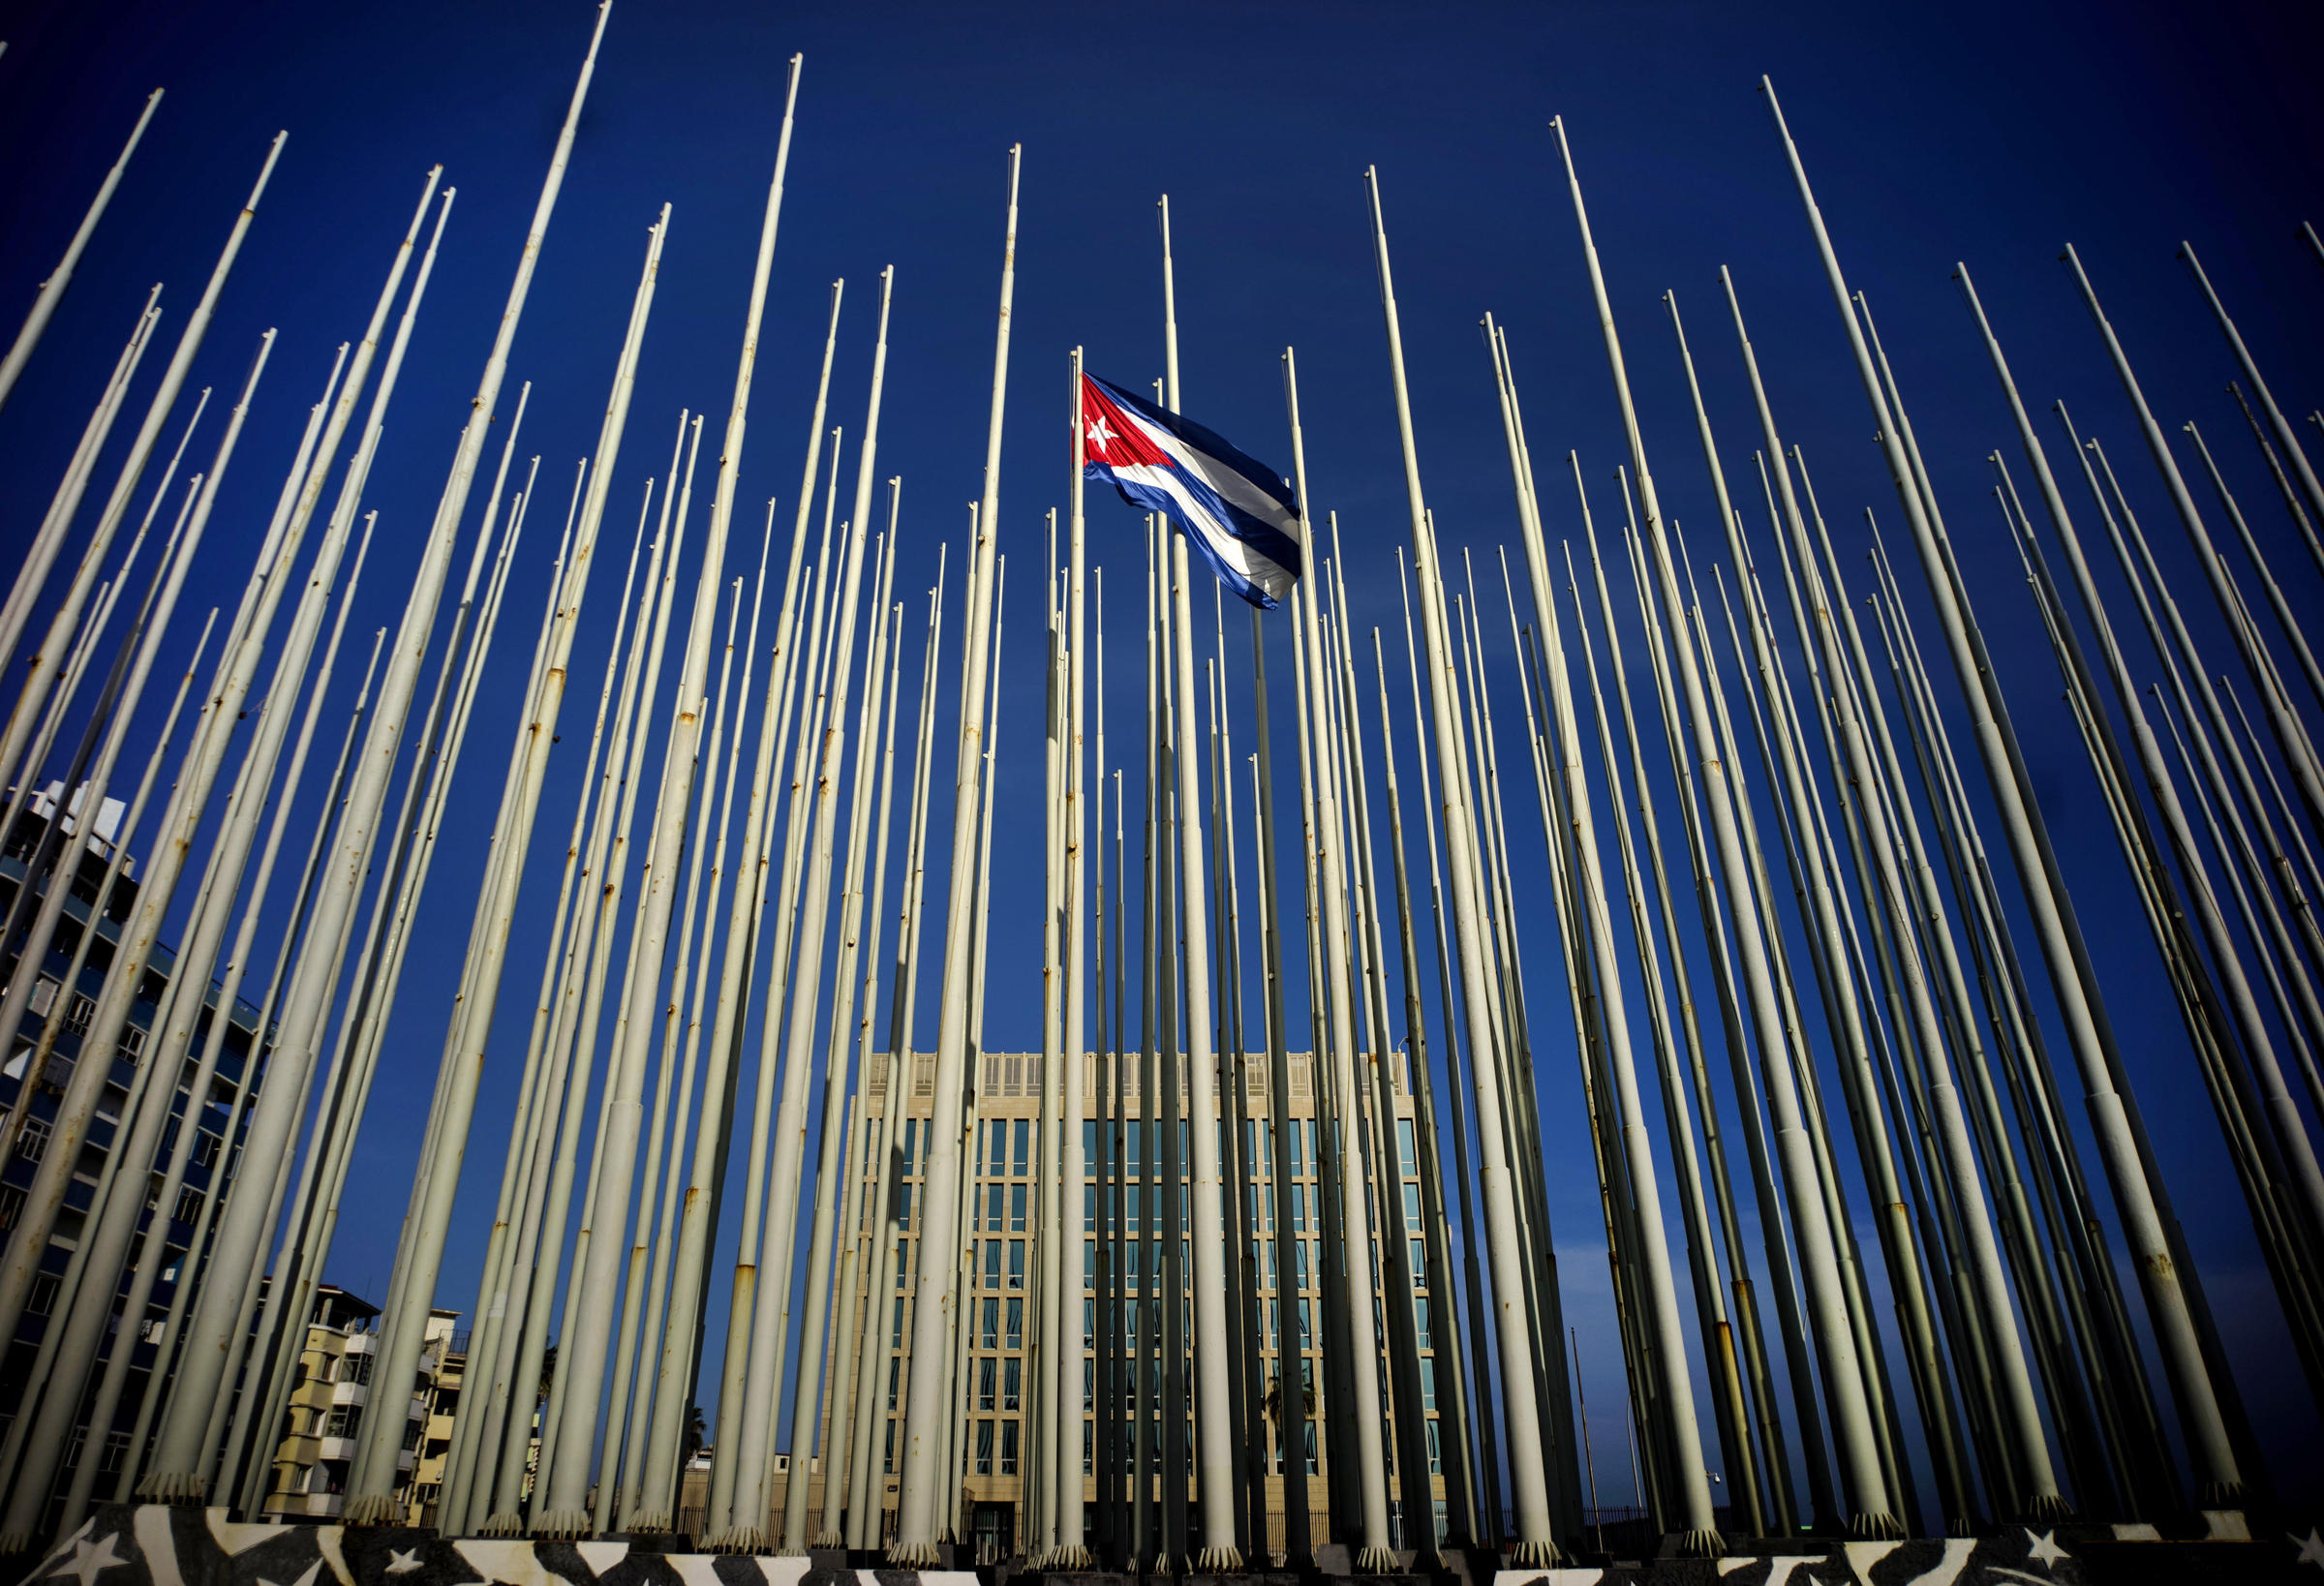 Section that building has again become the u s embassy in havana